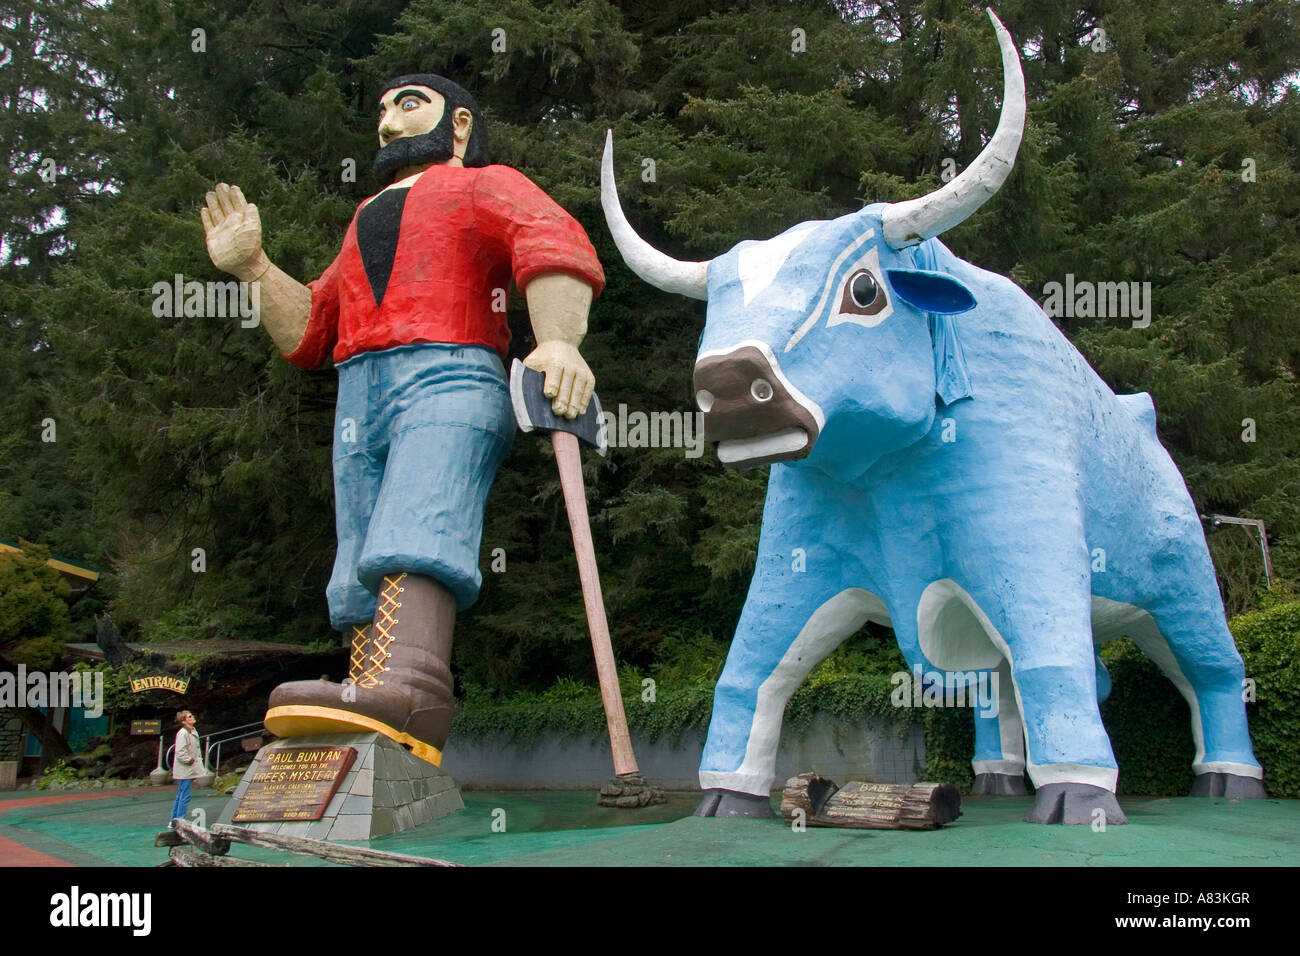 Giant statues of Paul Bunyan and Babe the Blue Ox guard the entrance of the Trees of Mystery at Klamath California - Stock Image